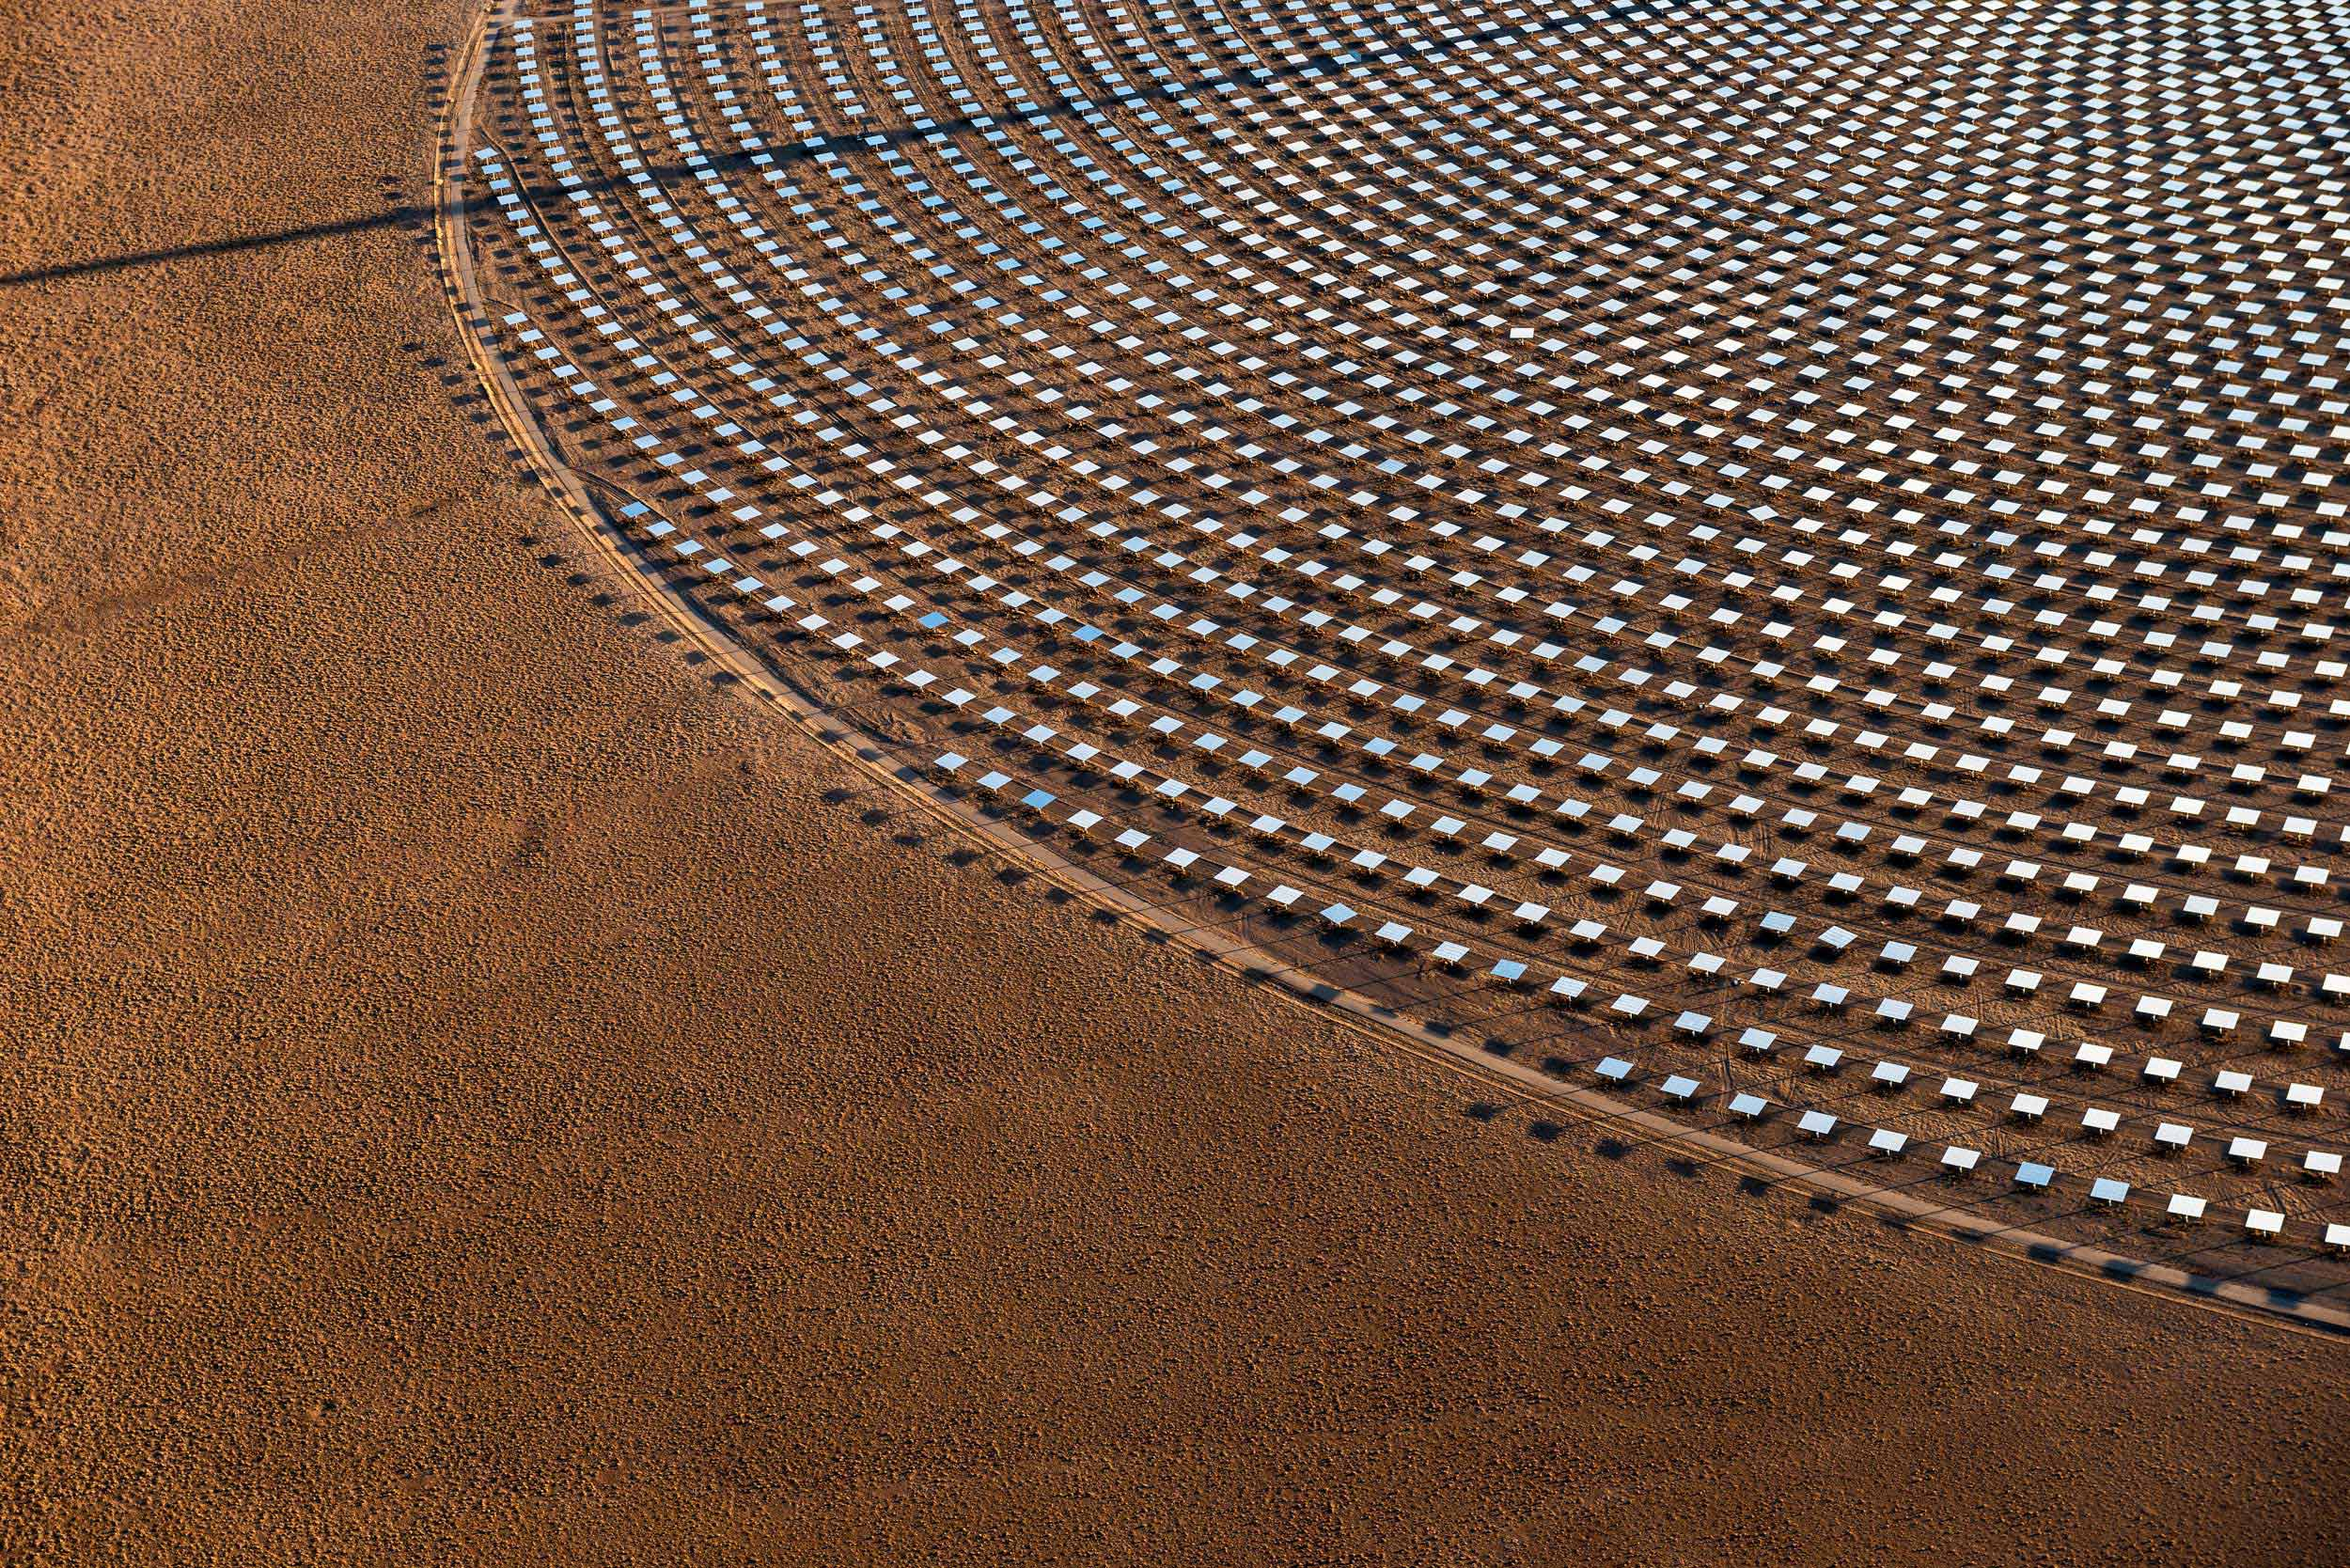 Heliostats at Crescent Dunes Solar, near Tonopah, Nevada, USA